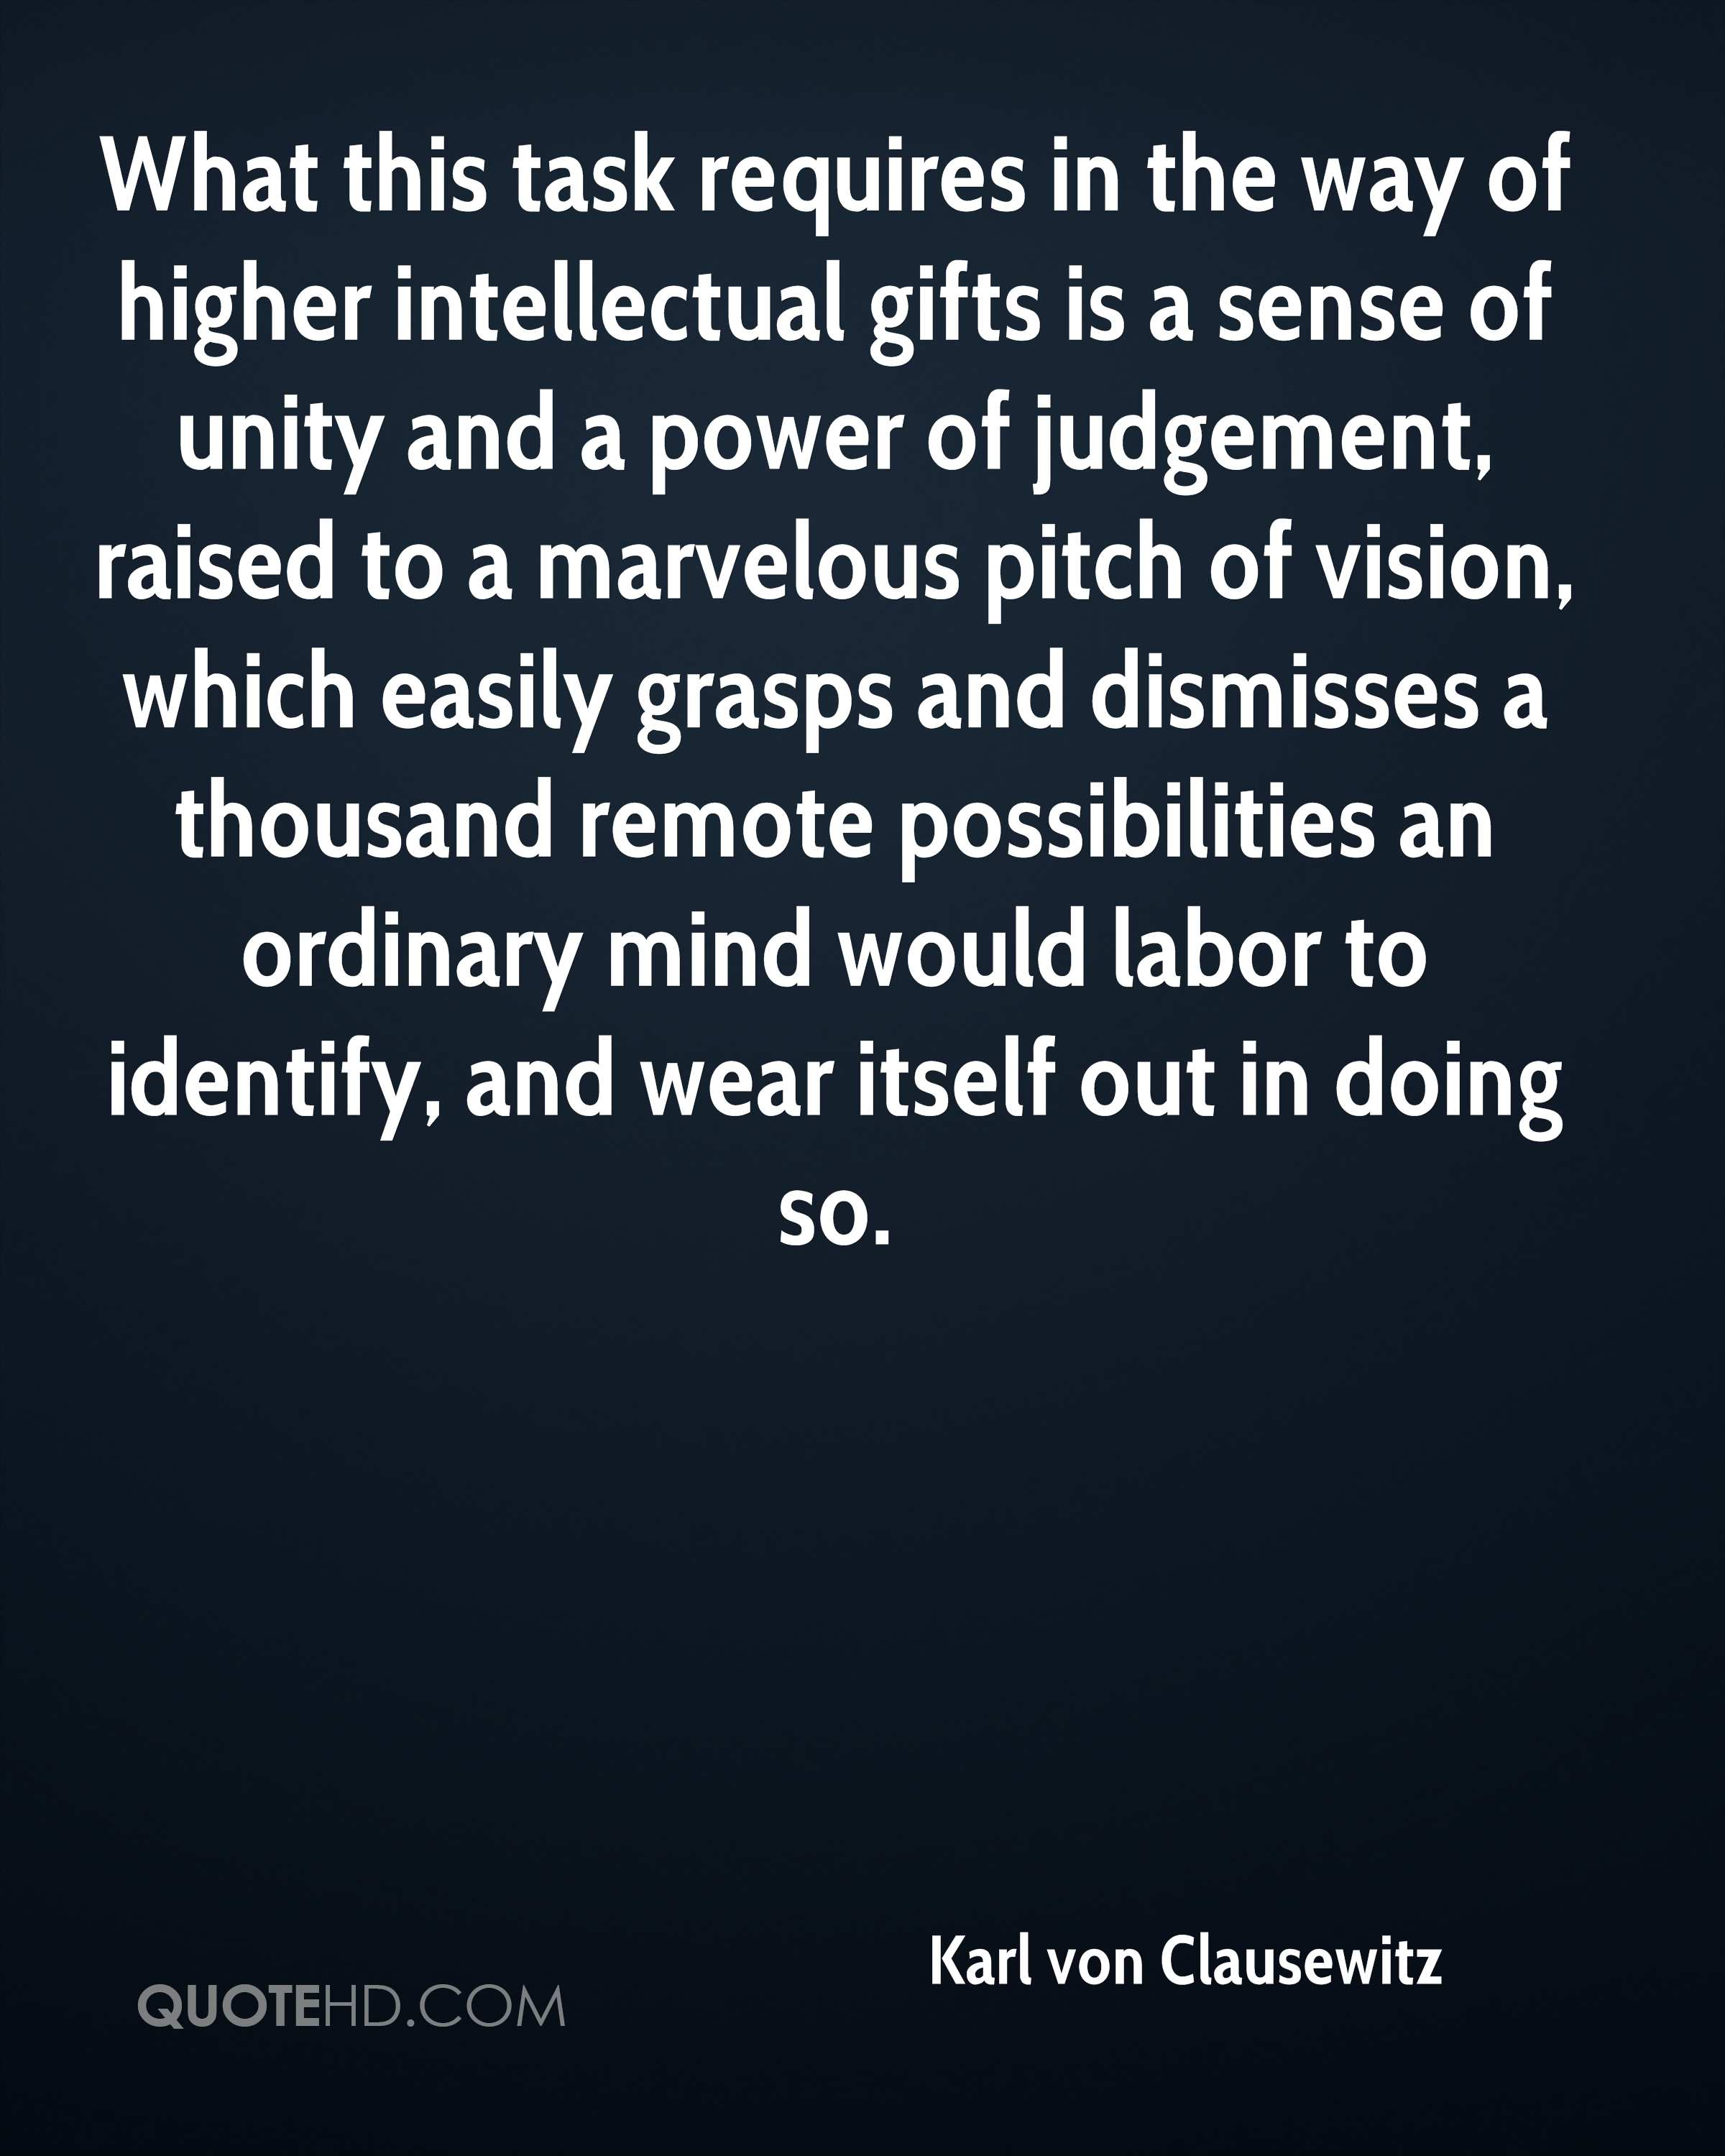 What this task requires in the way of higher intellectual gifts is a sense of unity and a power of judgement, raised to a marvelous pitch of vision, which easily grasps and dismisses a thousand remote possibilities an ordinary mind would labor to identify, and wear itself out in doing so.